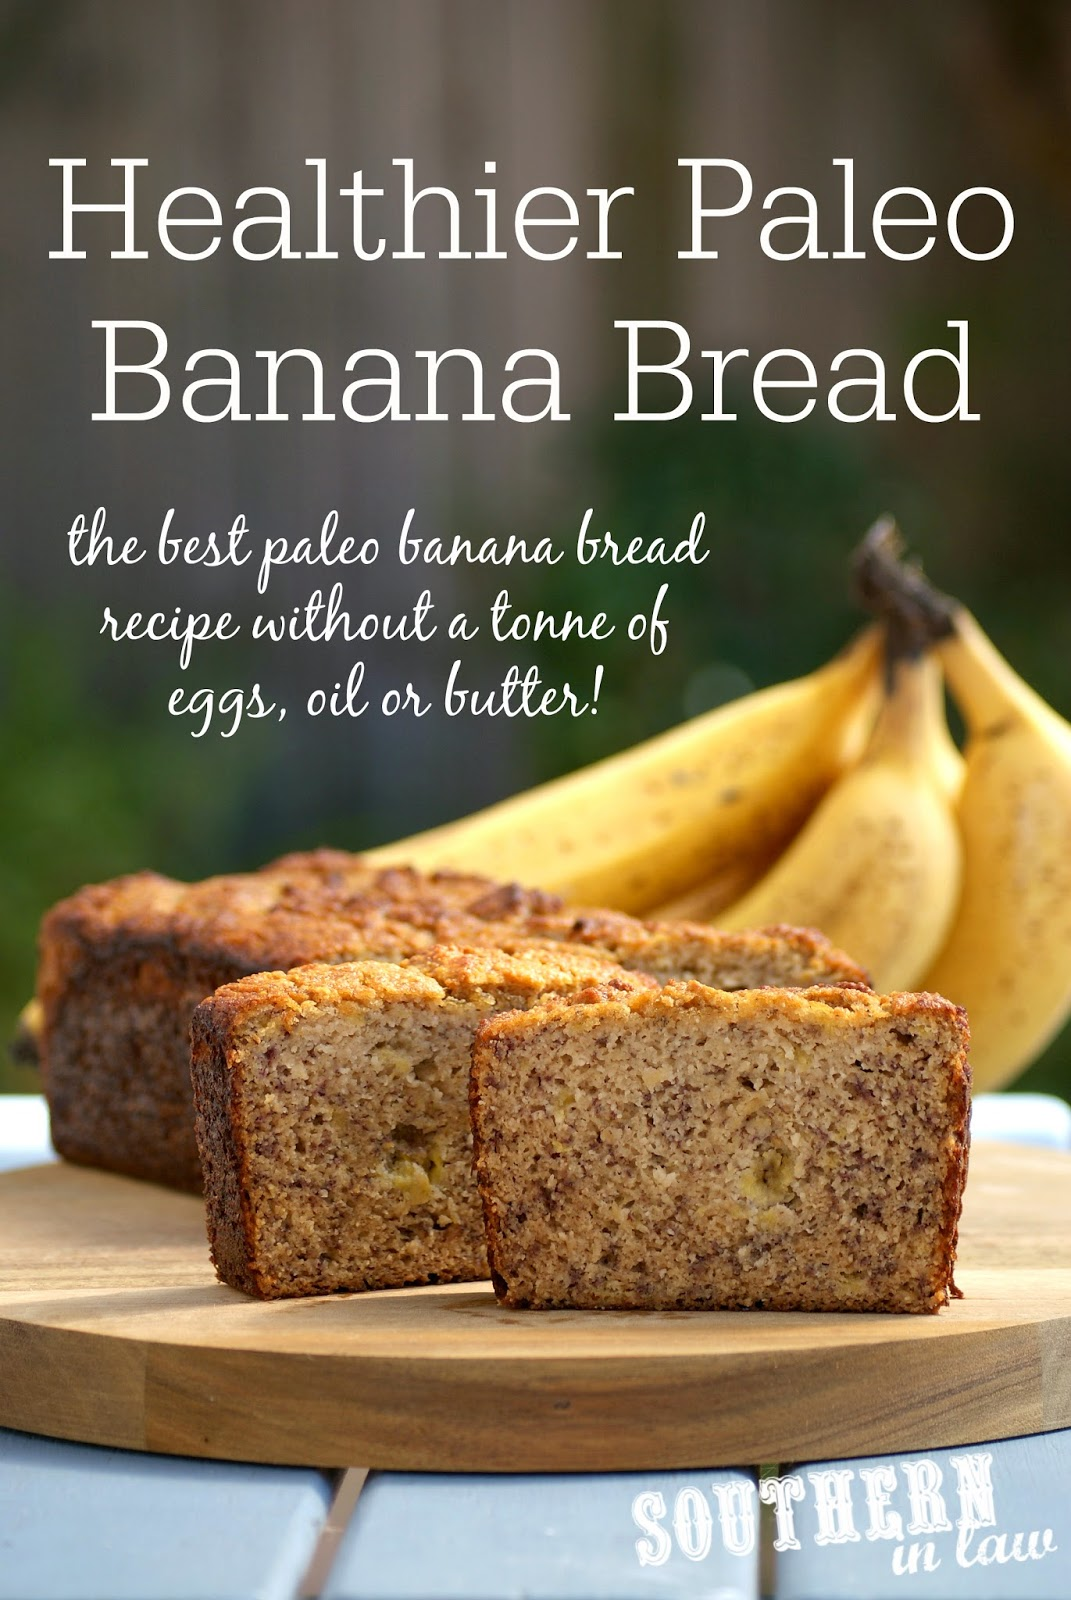 Healthy Paleo Banana Bread Recipe